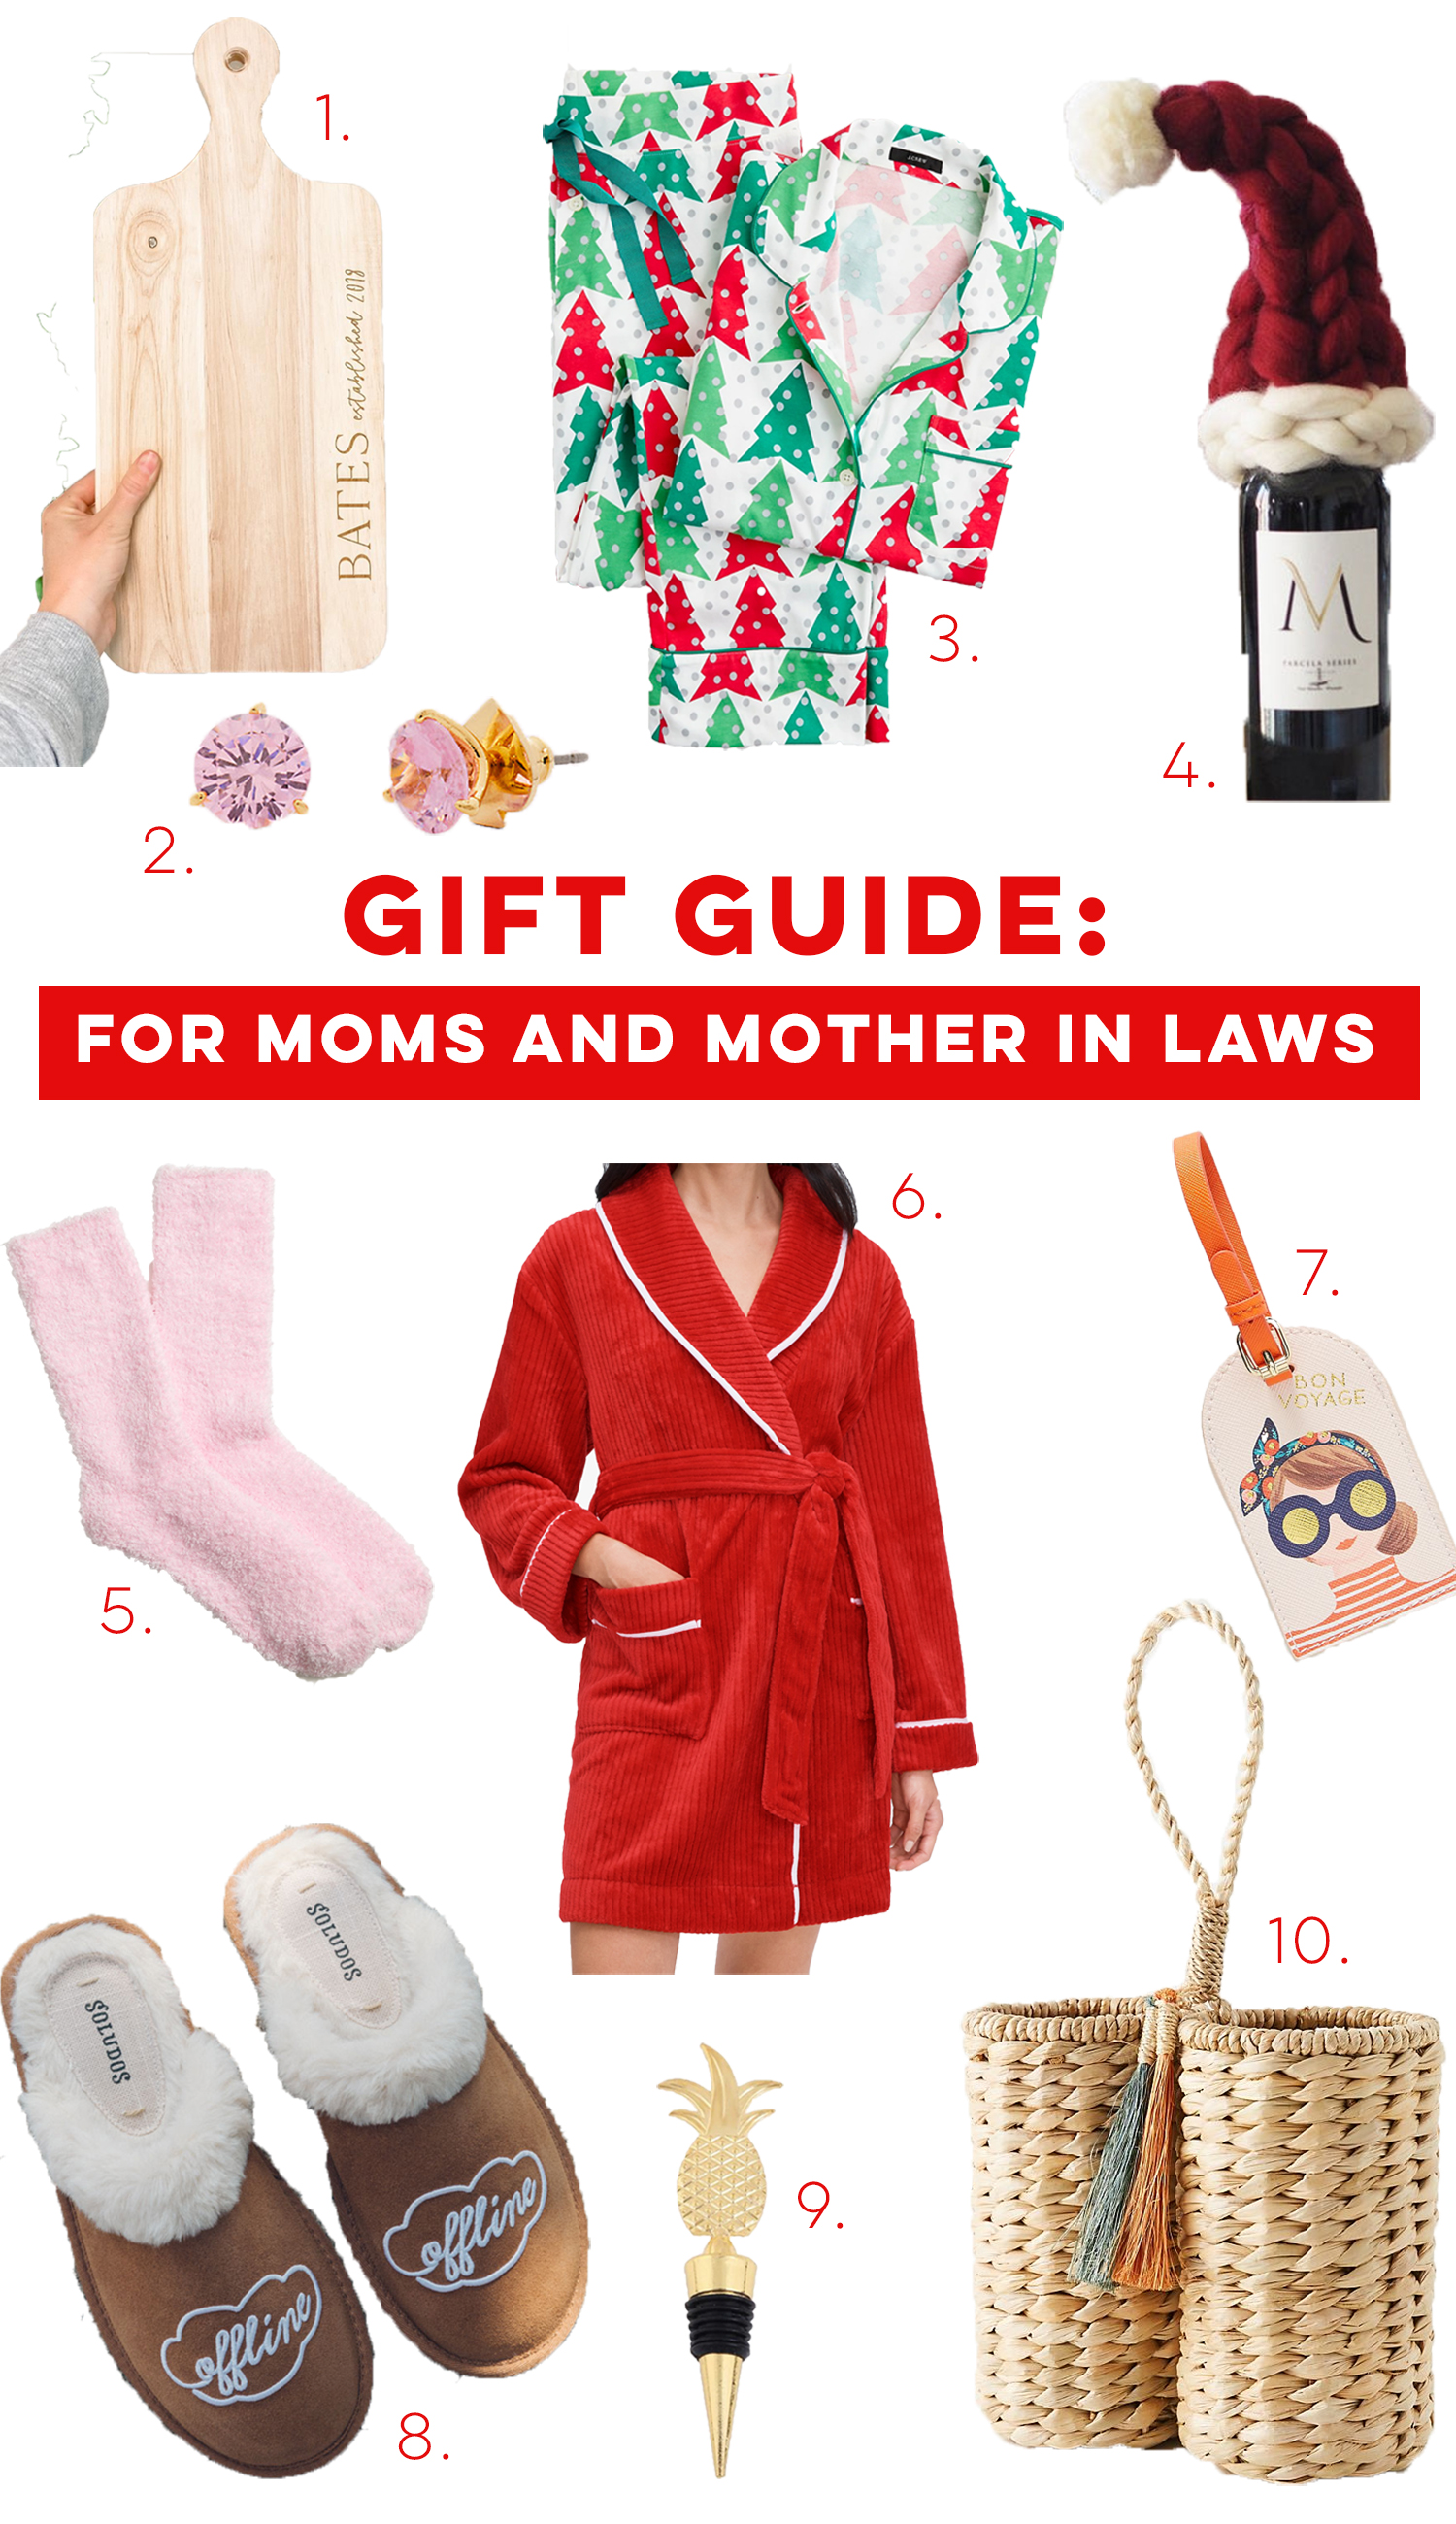 Gift Guide for Moms and Mother in Laws / Mother in Law Gifts / Gifts for Moms / Holiday Gift Guide for Her / Matching Pajama Set - Sunshine Style , A Florida Based Fashion and Lifestyle Blog